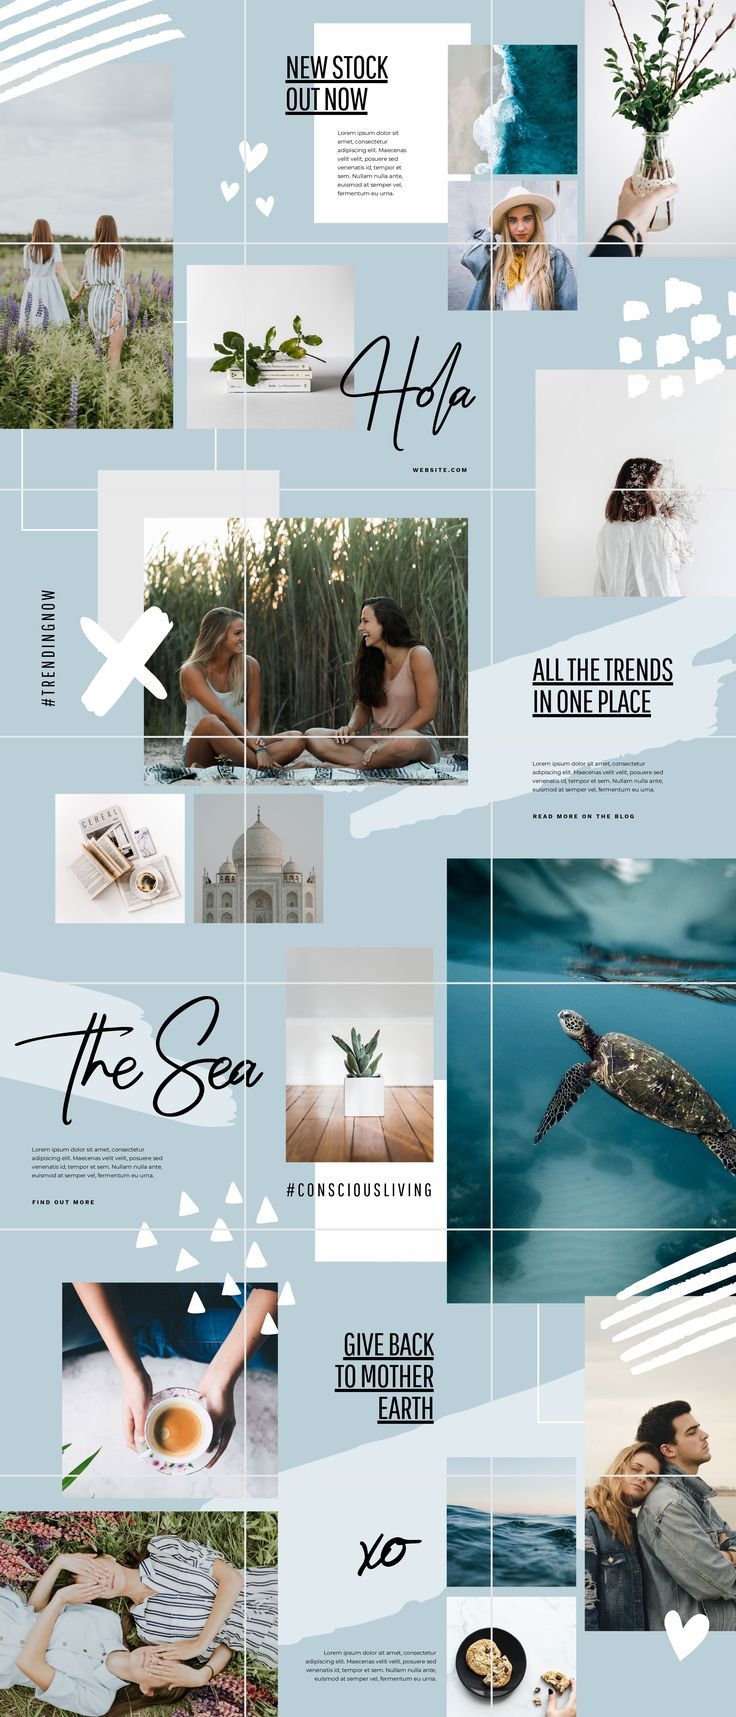 How To Create A Beautiful Instagram Puzzle Feed 5 Free Templates Easil Instagram Theme Feed Instagram Feed Layout Instagram Layout